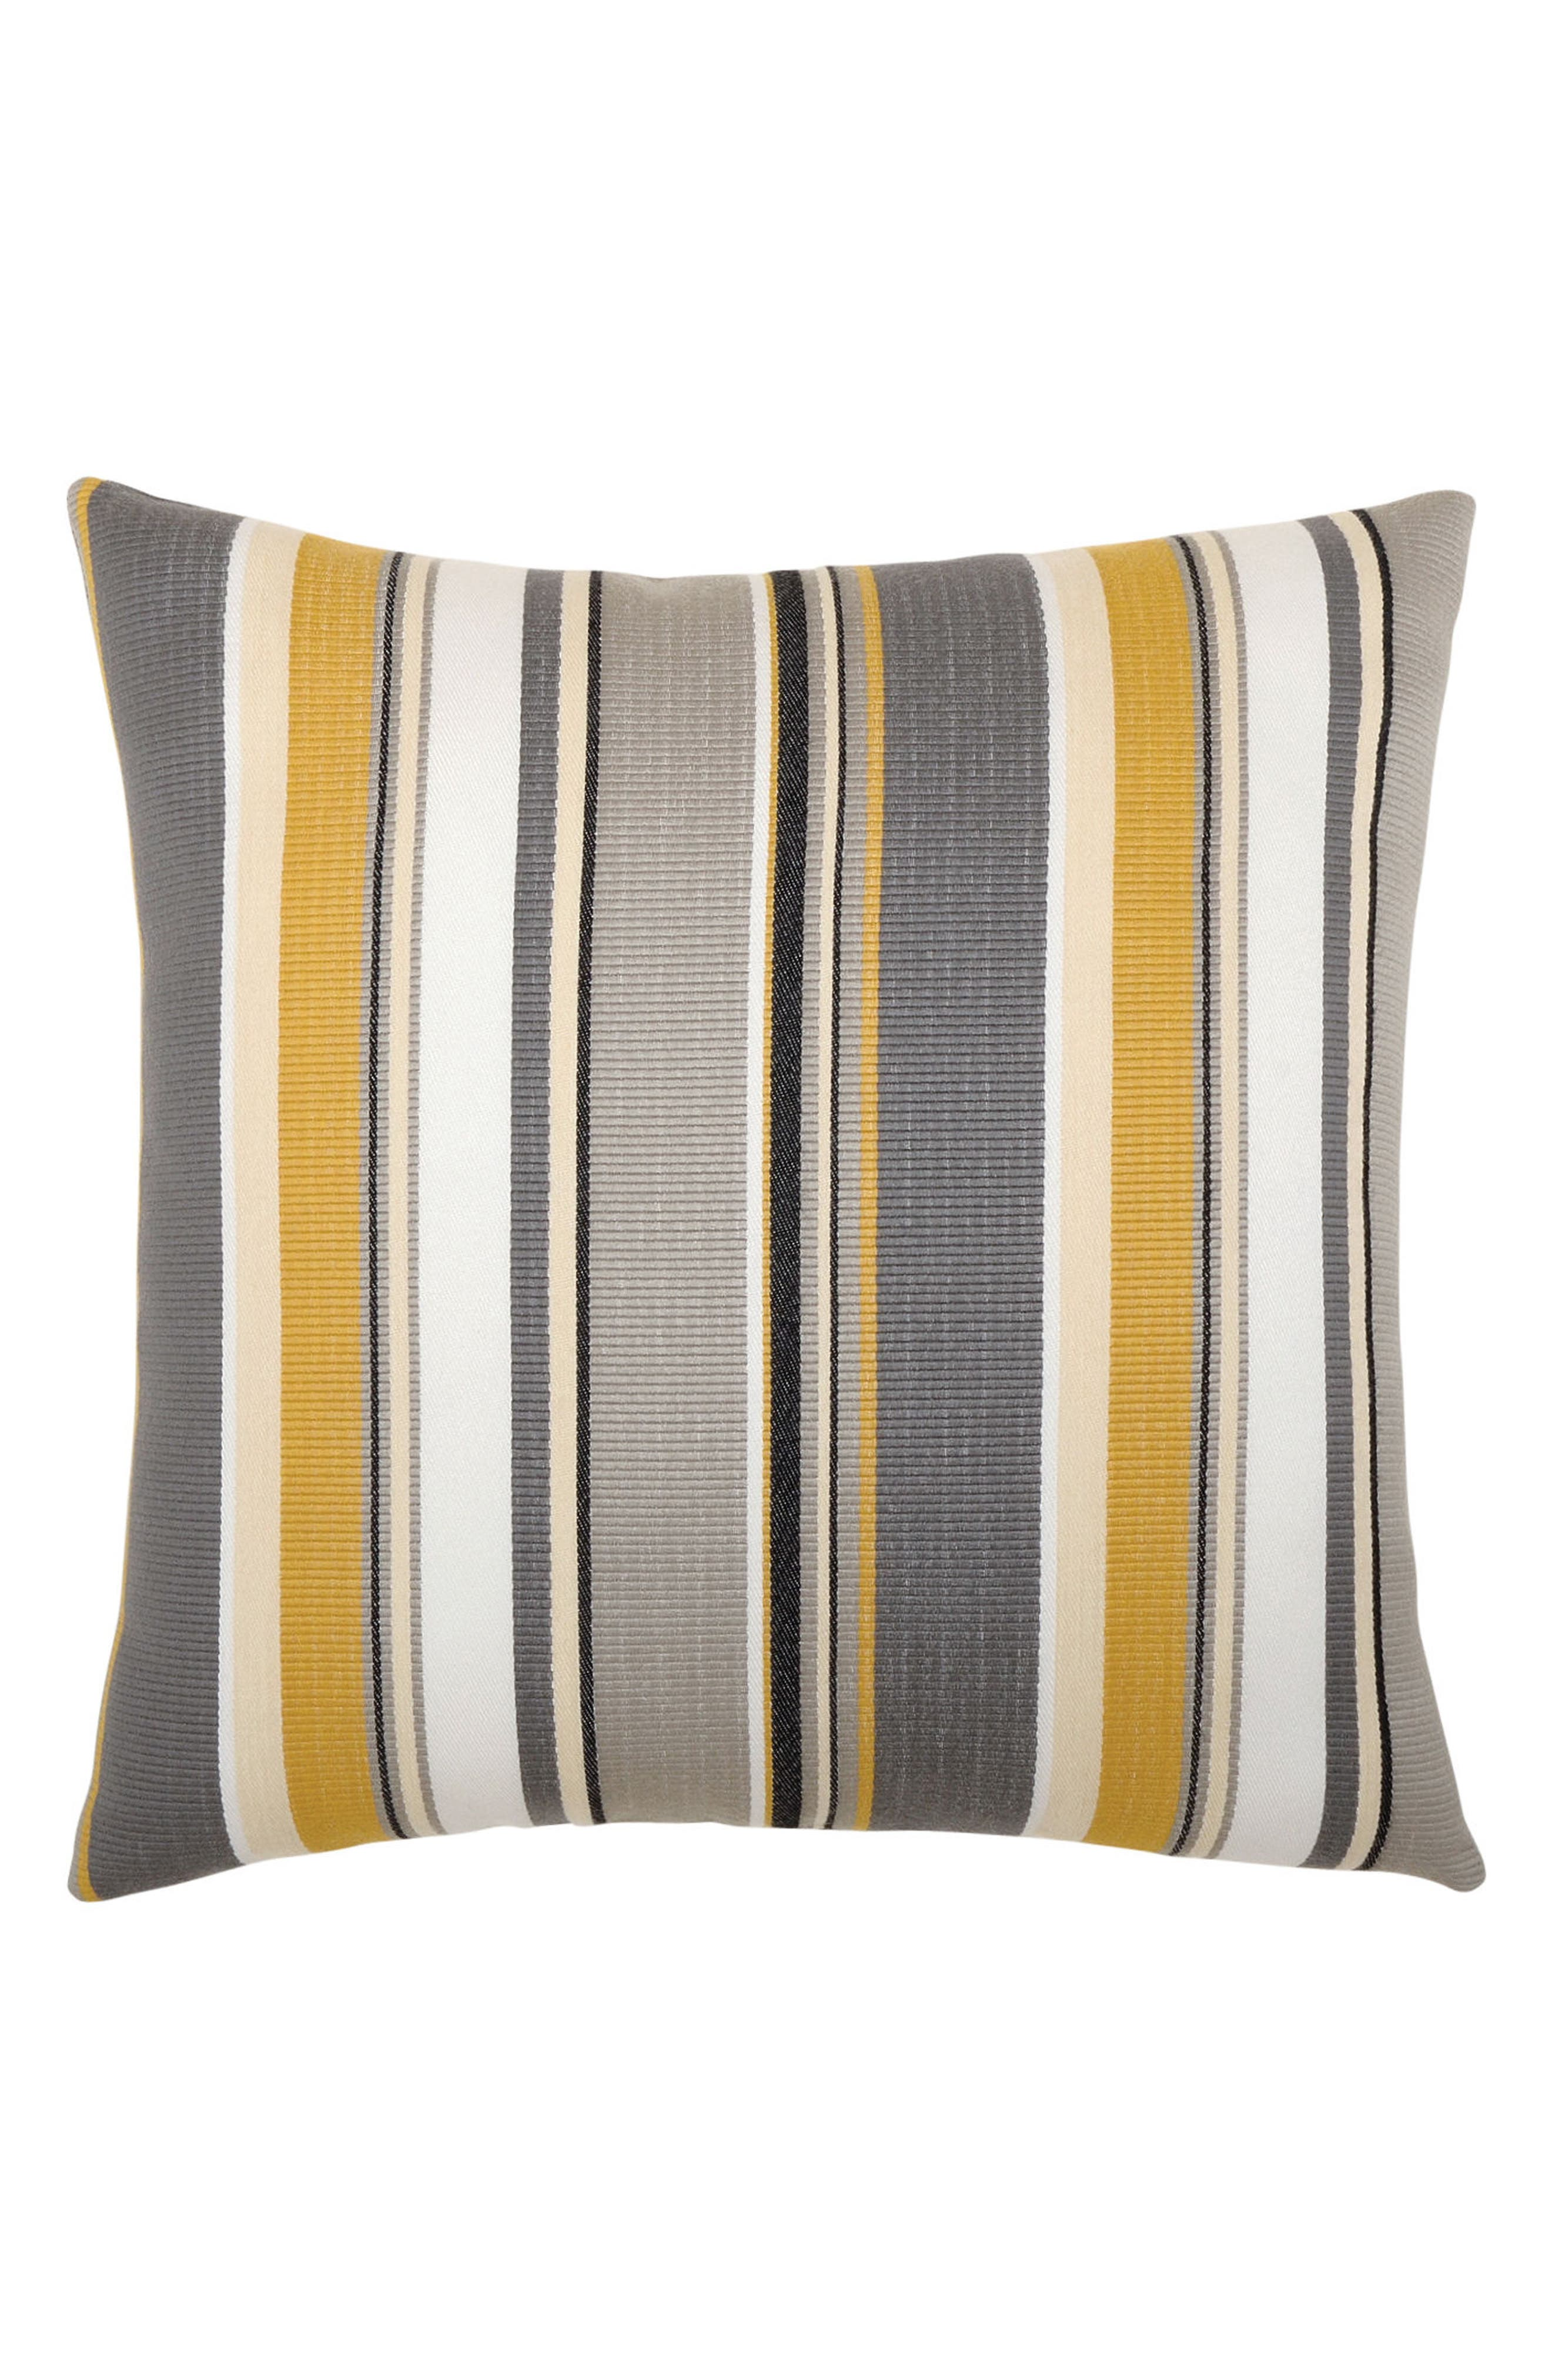 Shadow Stripe Indoor/Outdoor Accent Pillow,                             Main thumbnail 1, color,                             Grey/ Gold